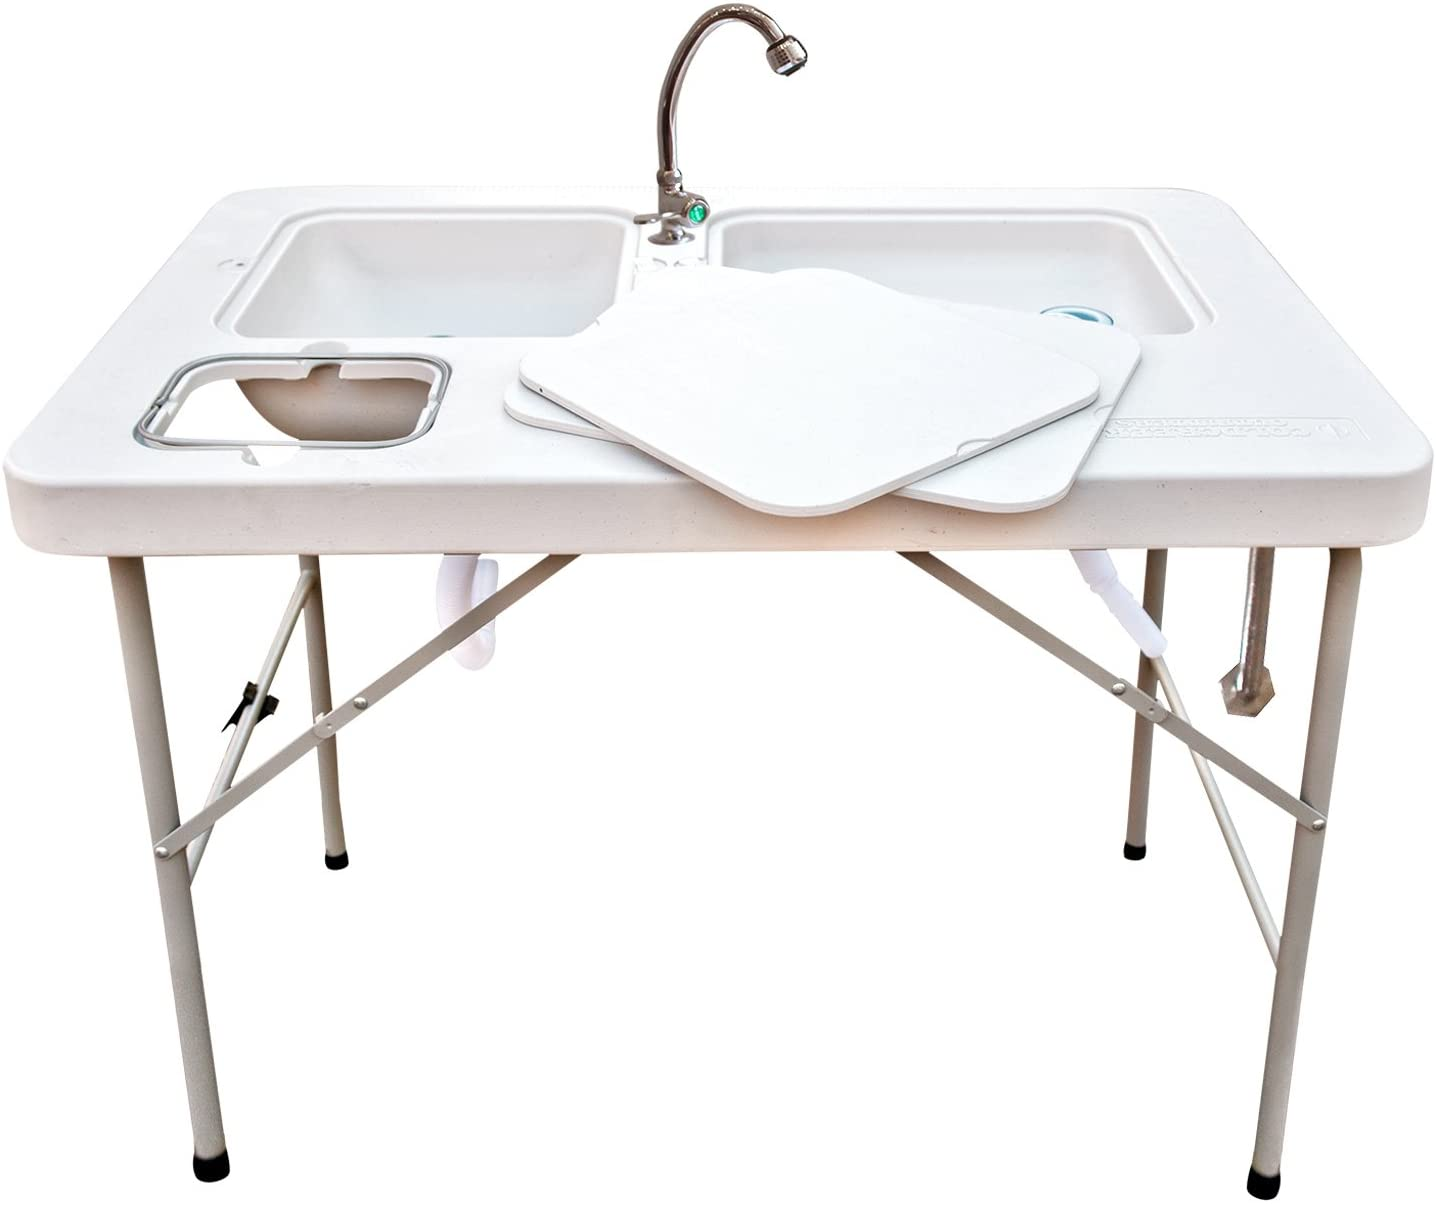 Coldcreek Outfitters Outdoor Washing Table, Faucet and Sink